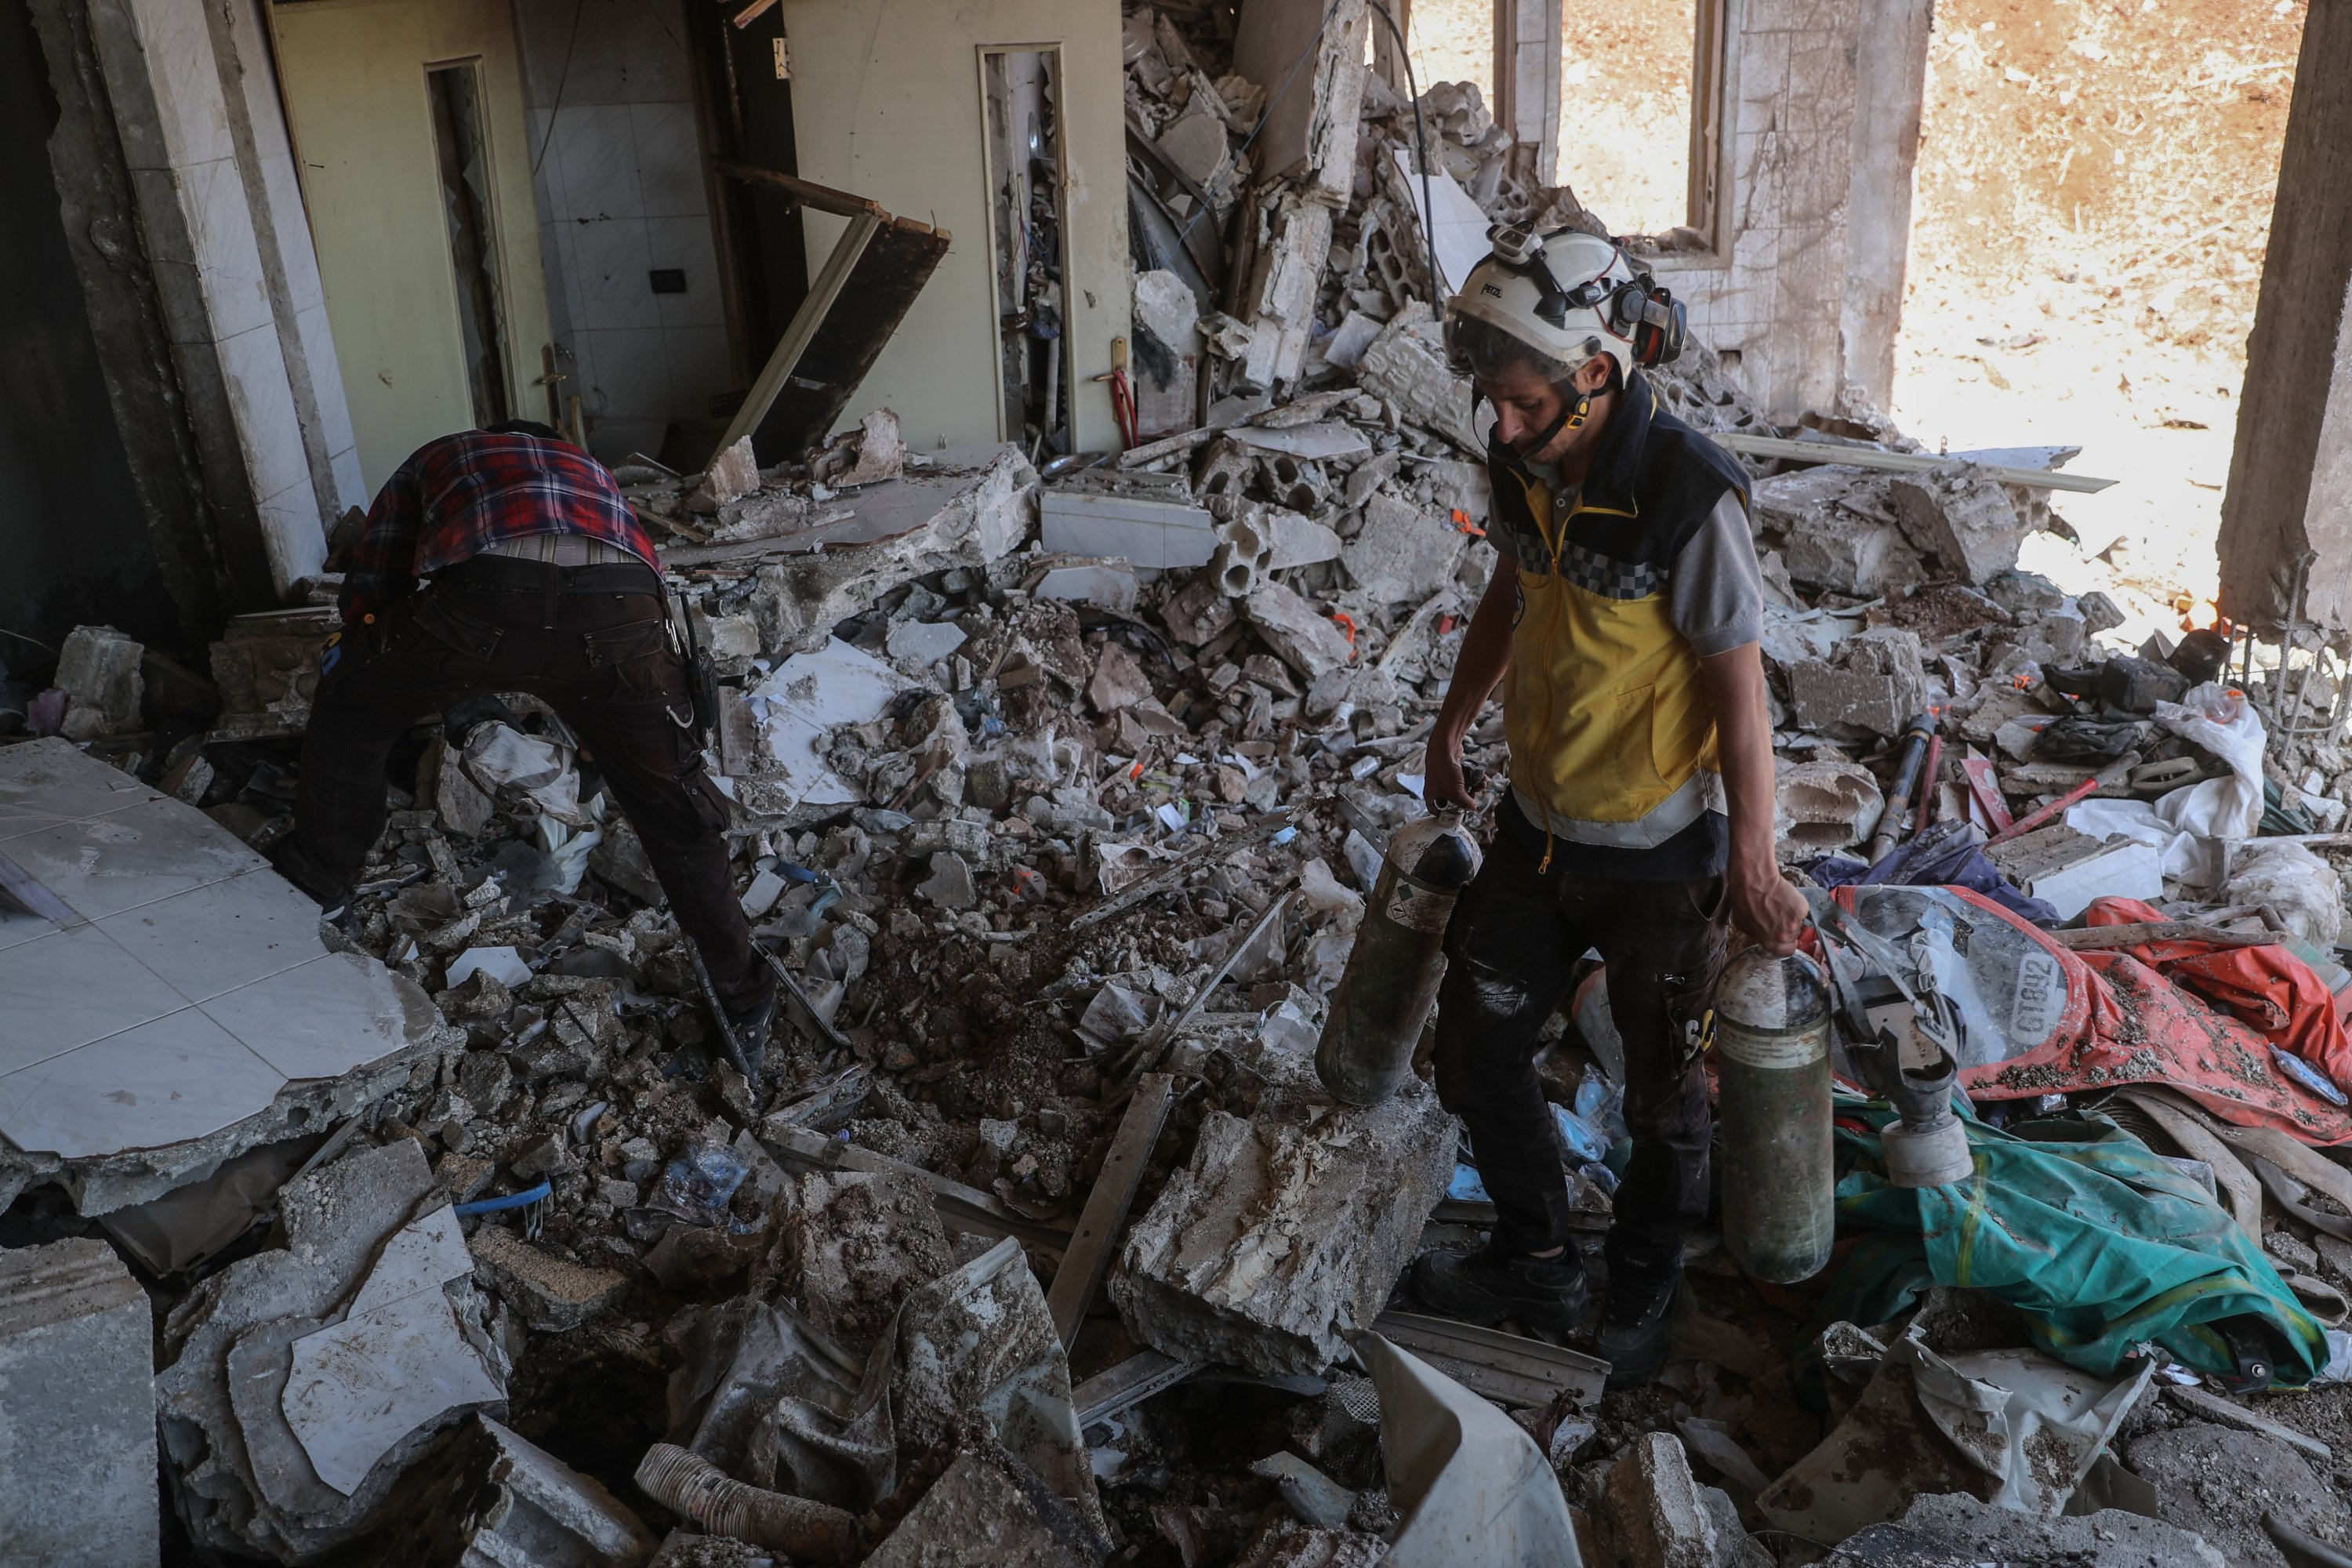 Members of the Syria Civil Defence, known as White Helmets, inspect the rubble of a damaged Civil Defence center after it was targeted by warplanes, Idlib, Syria, July 3, 2021. (Getty Images)